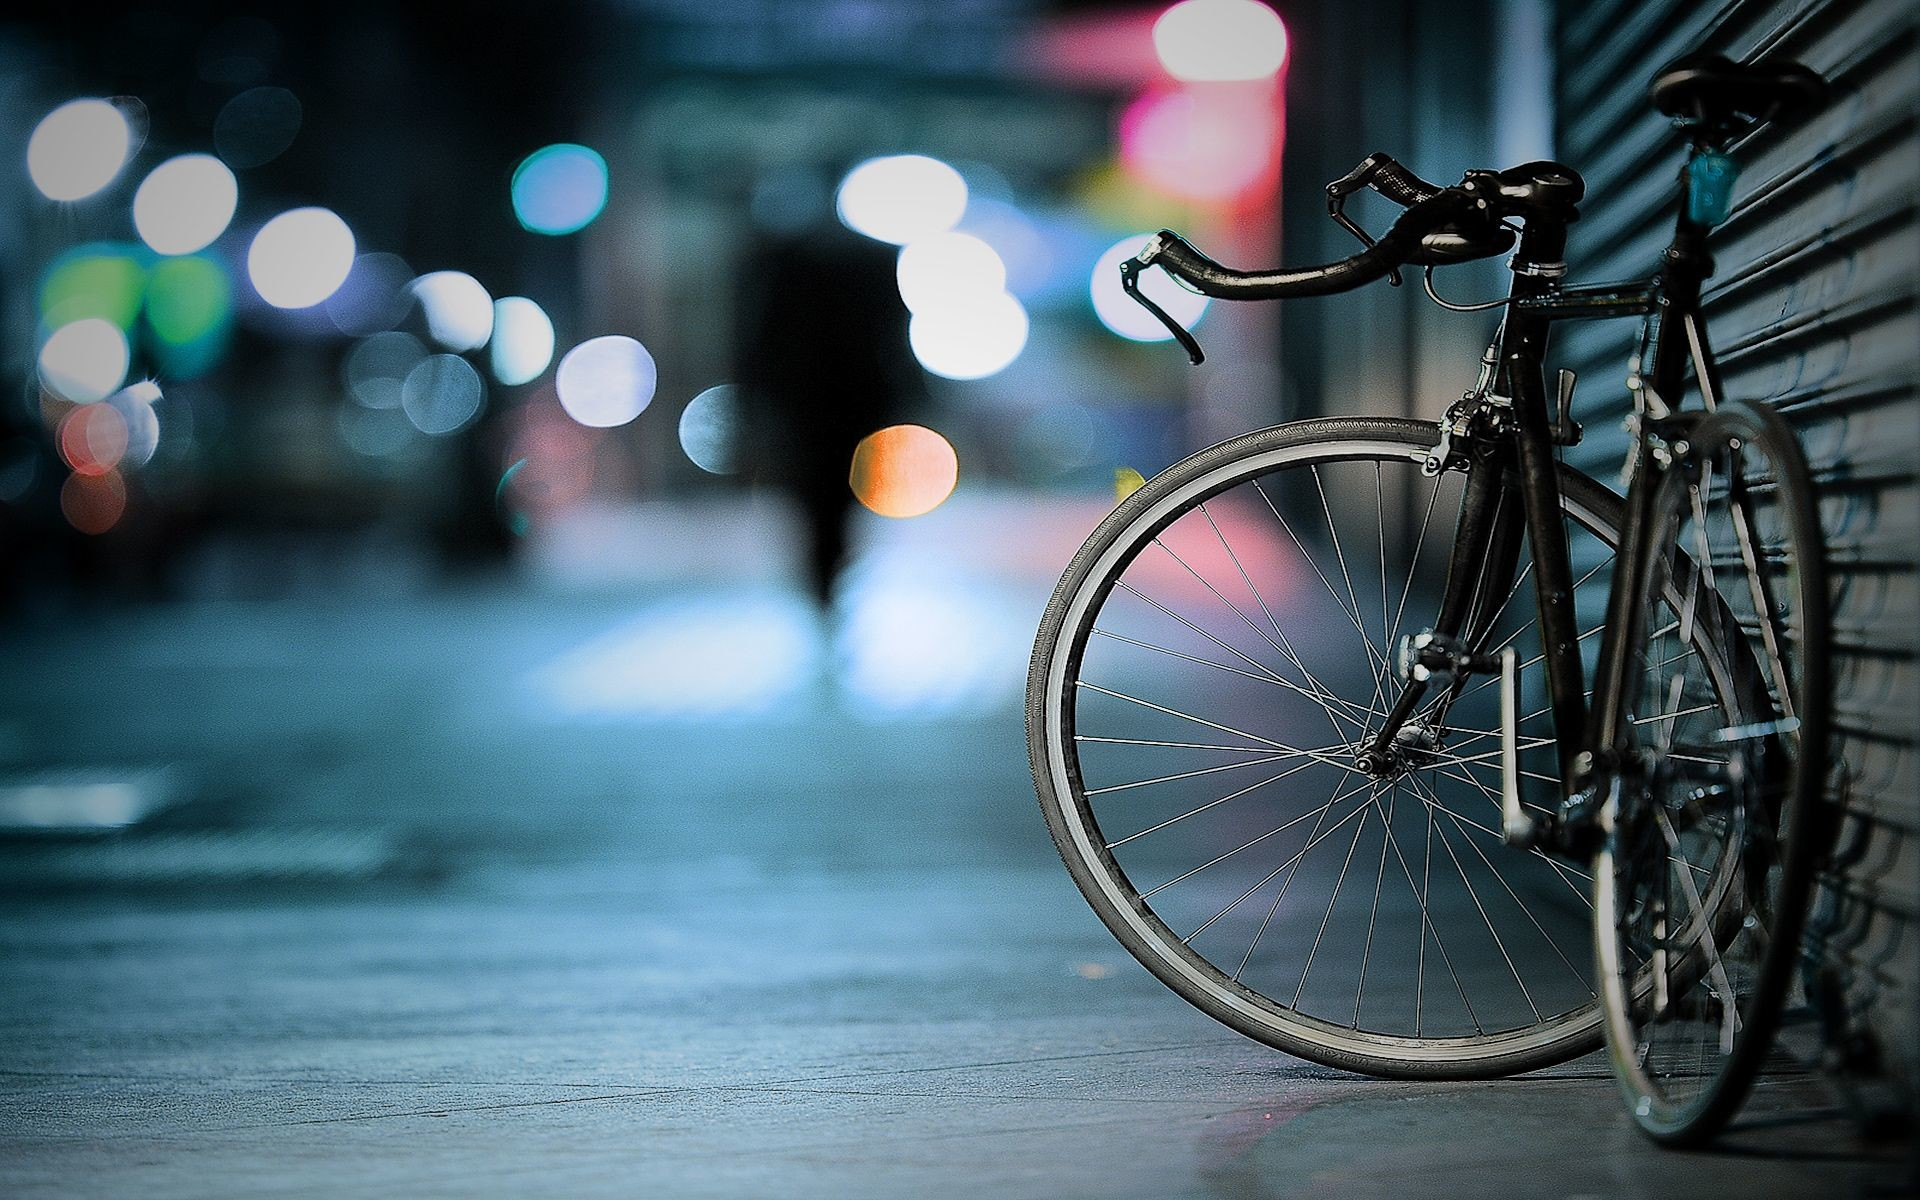 Res: 1920x1200, Old Bicycle Photography Images Wallpaper HD Desktop Mobile Free #52898227  Wallpaper